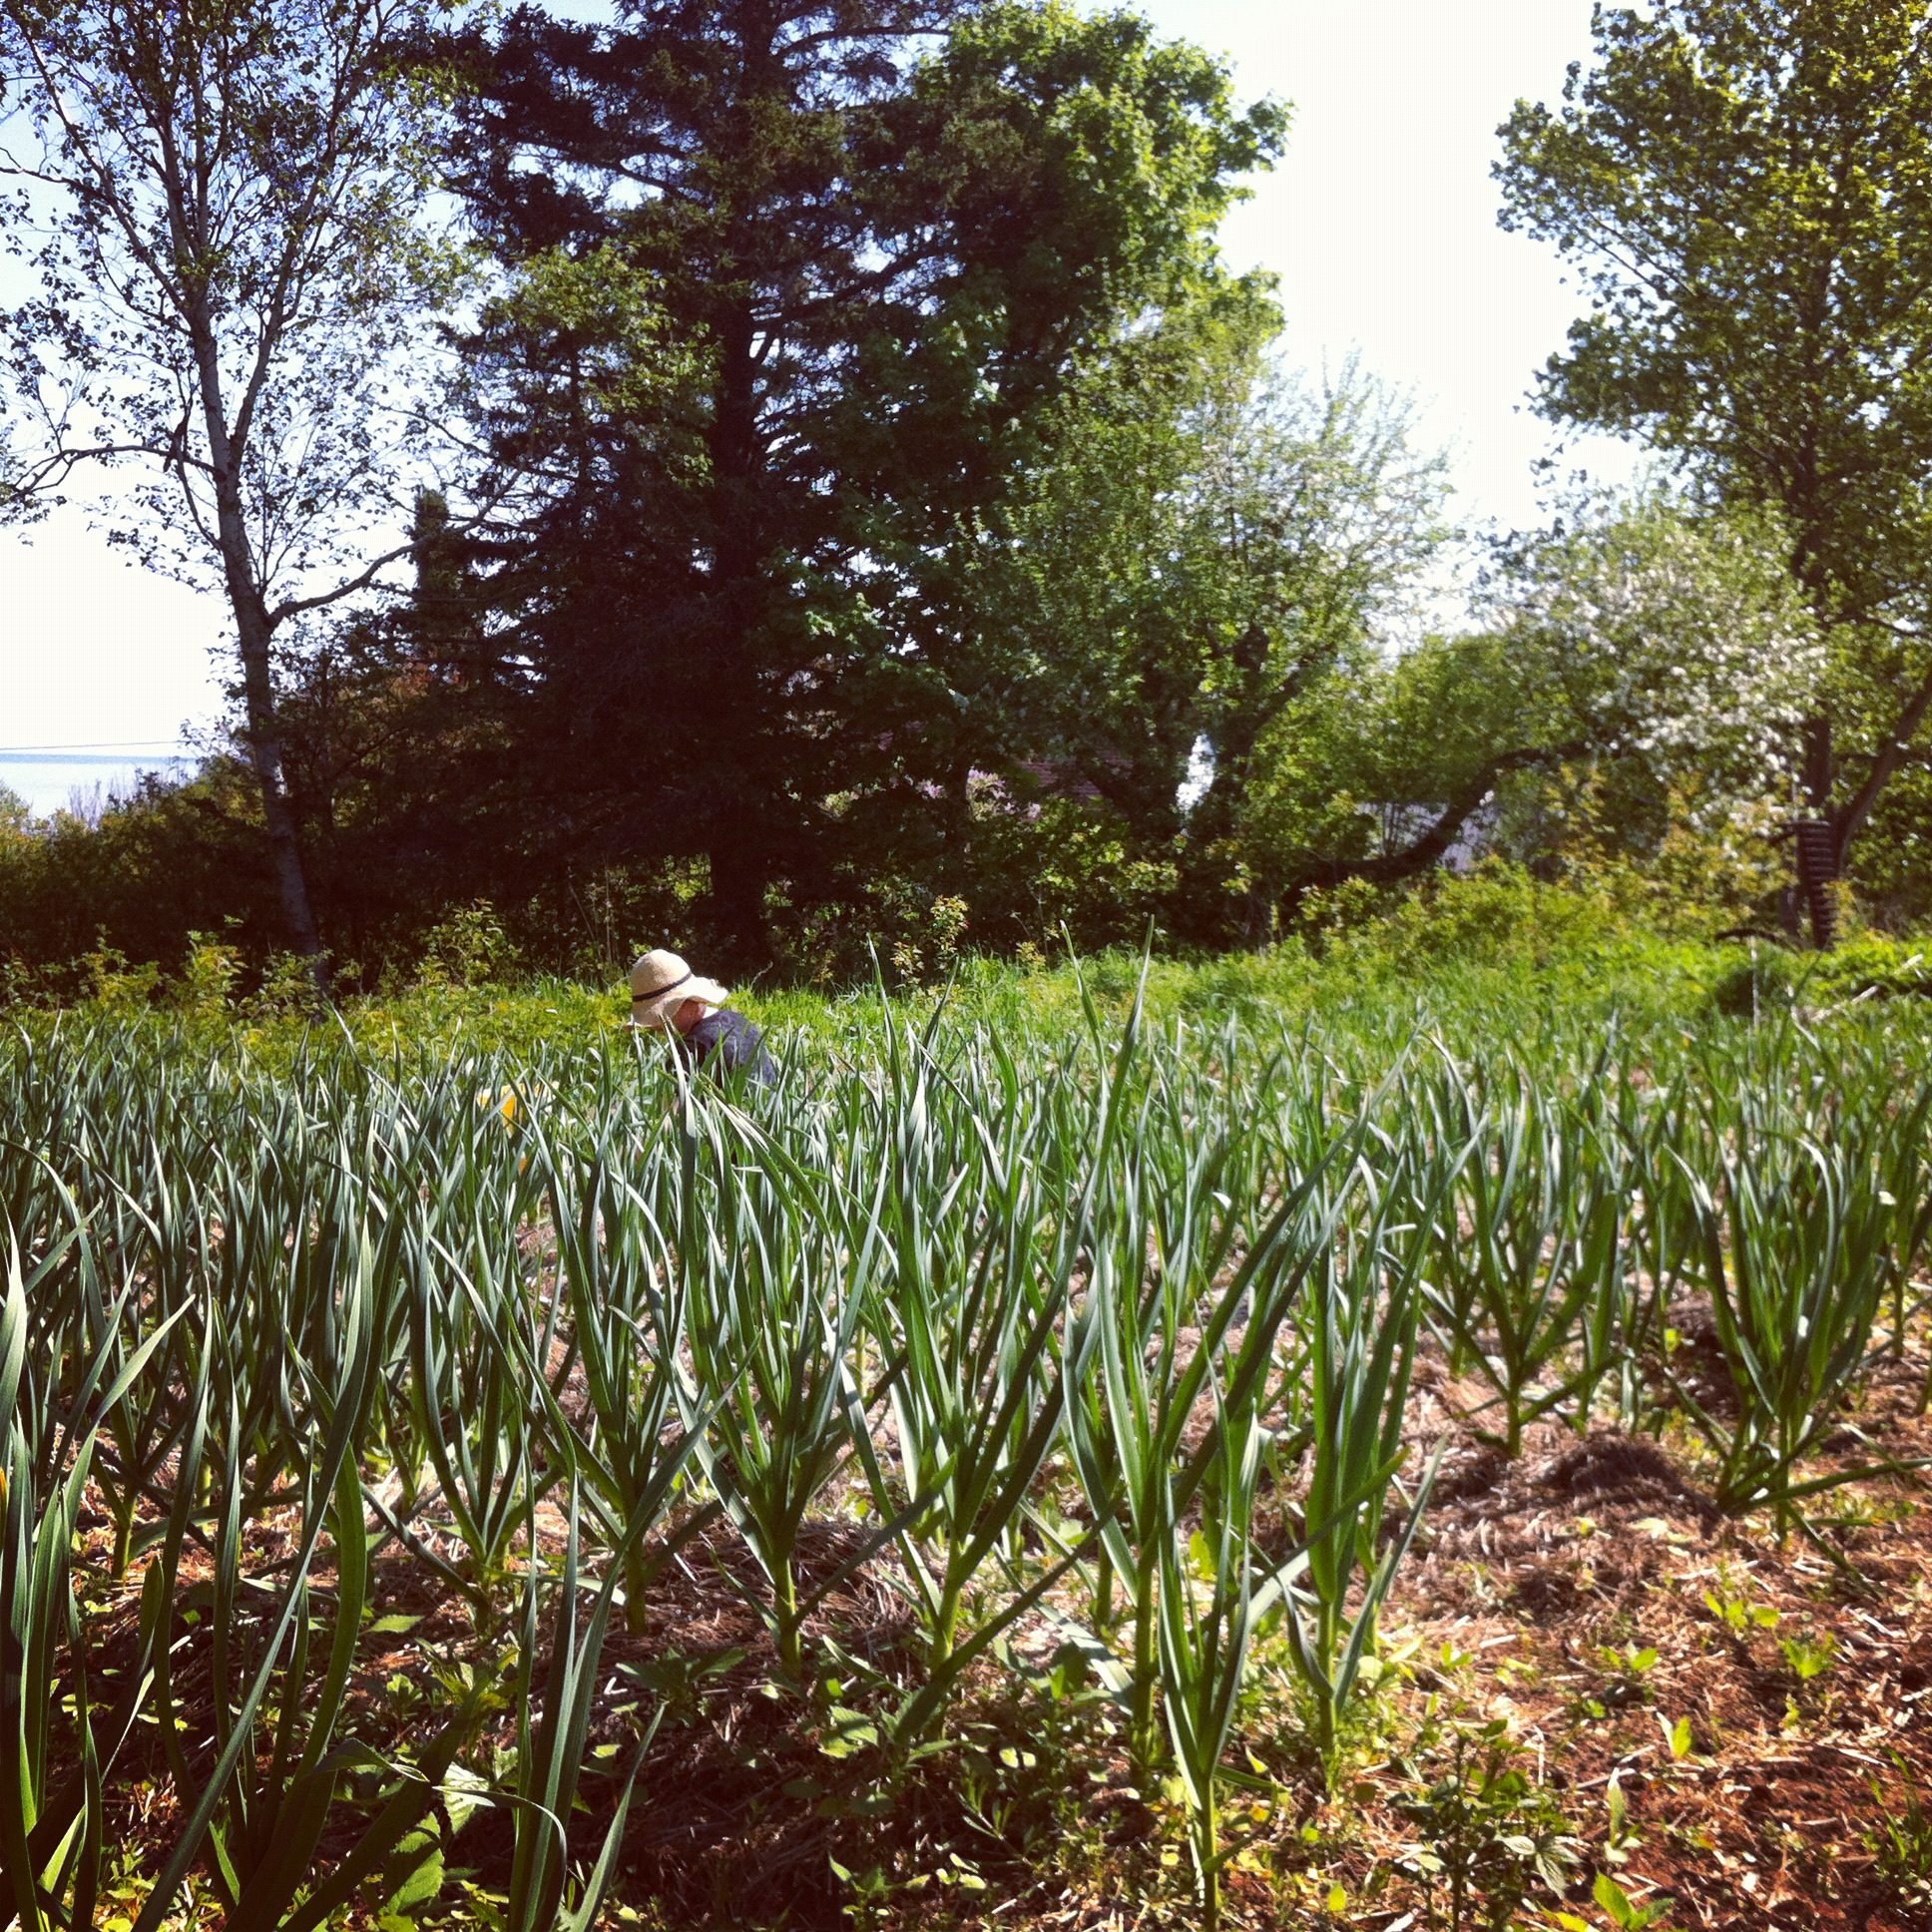 Chrissy weeding the garlic.